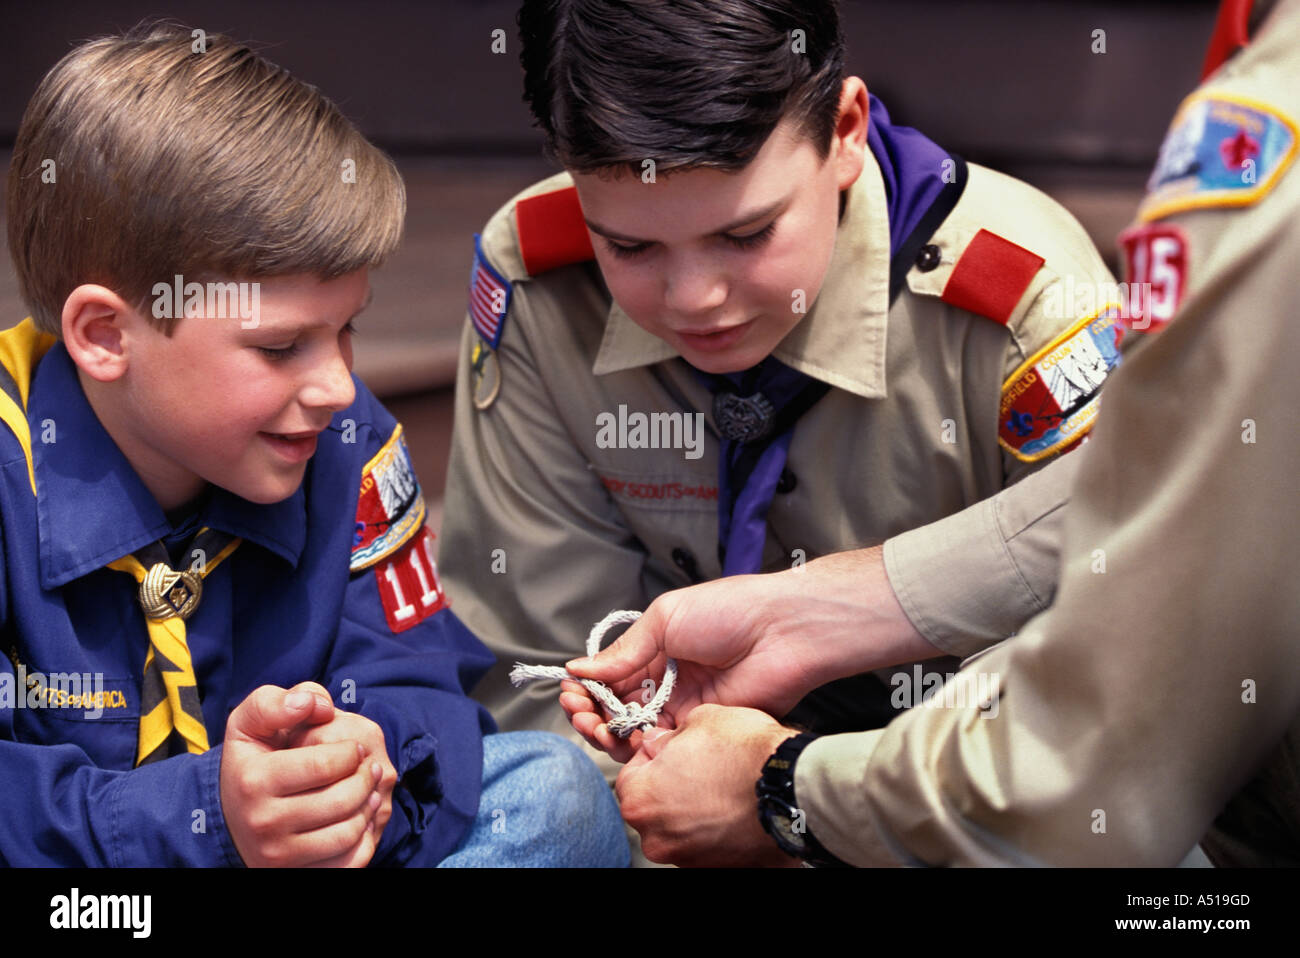 Boy Scout Teaches Weblo And Cub Scout To Tie Knots User